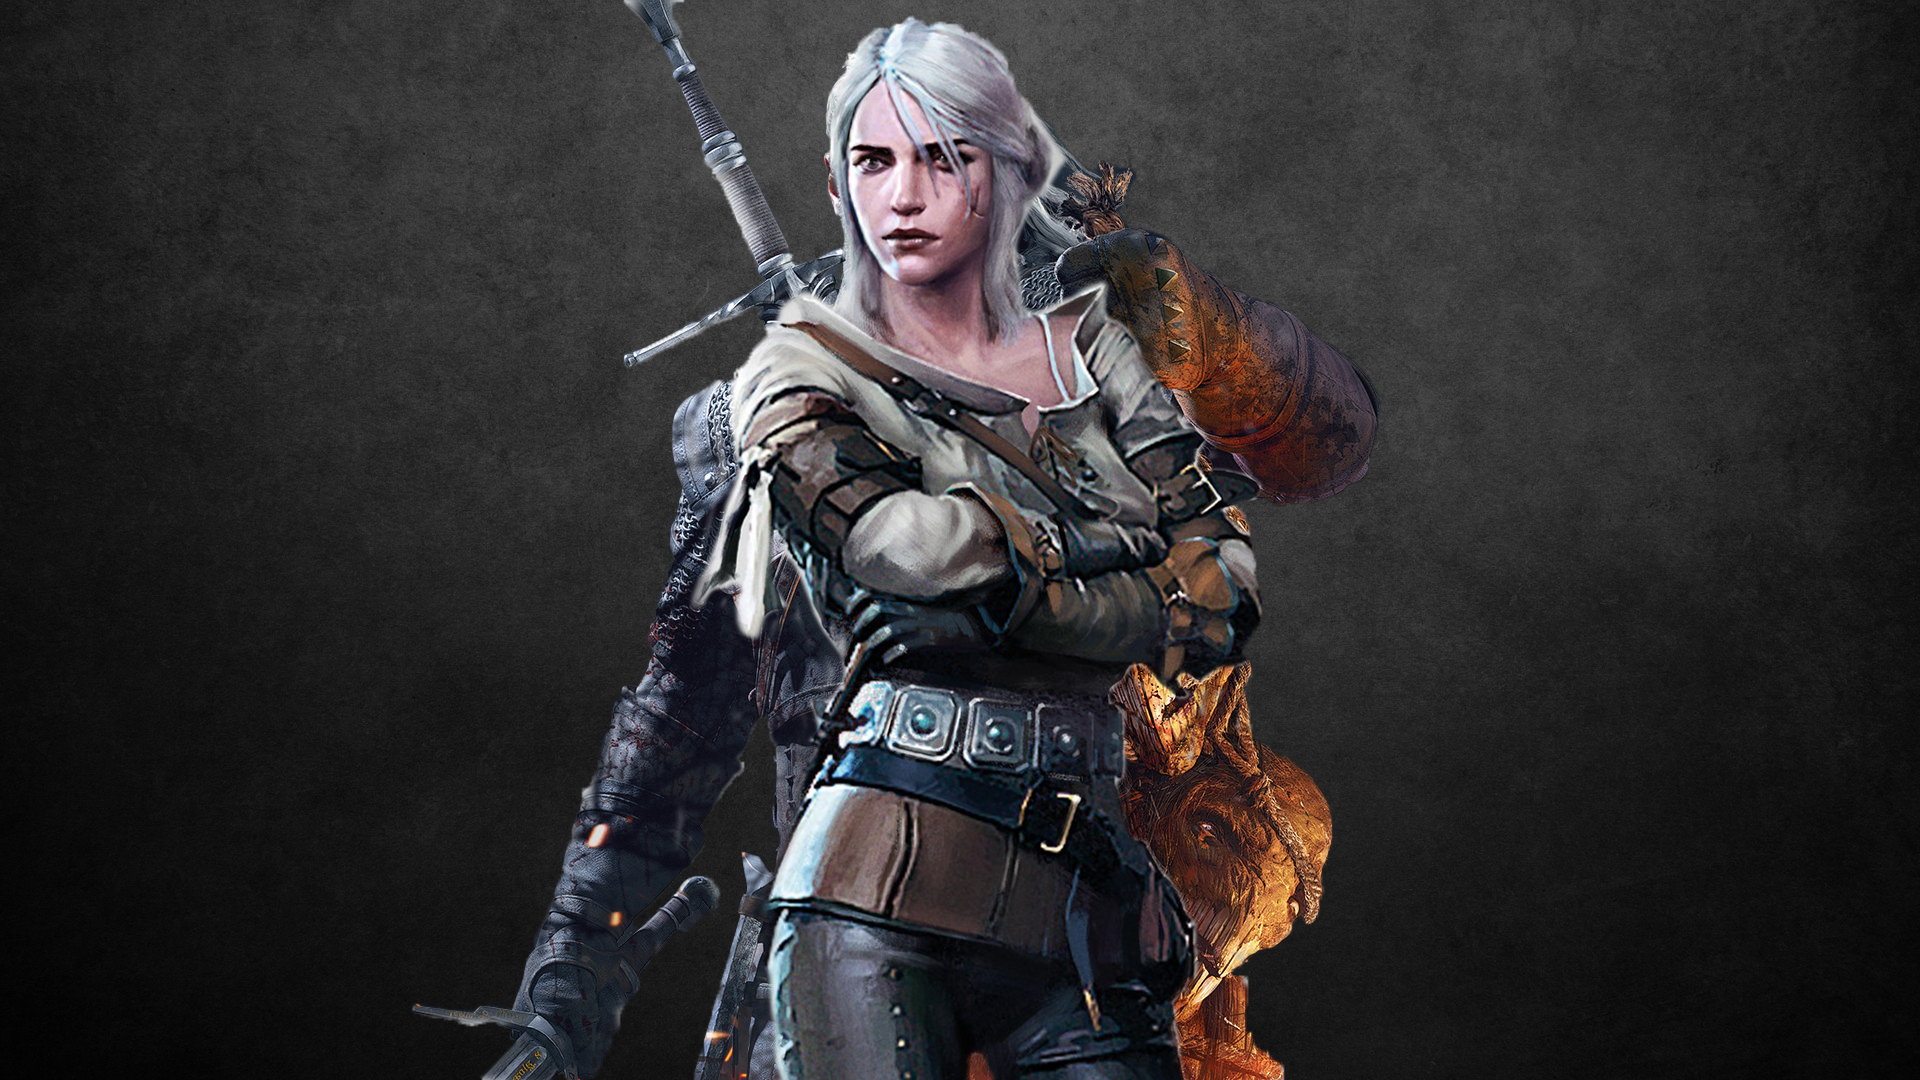 Free Download Geralt Ciri Combo 1080p Wallpaper Made By Me